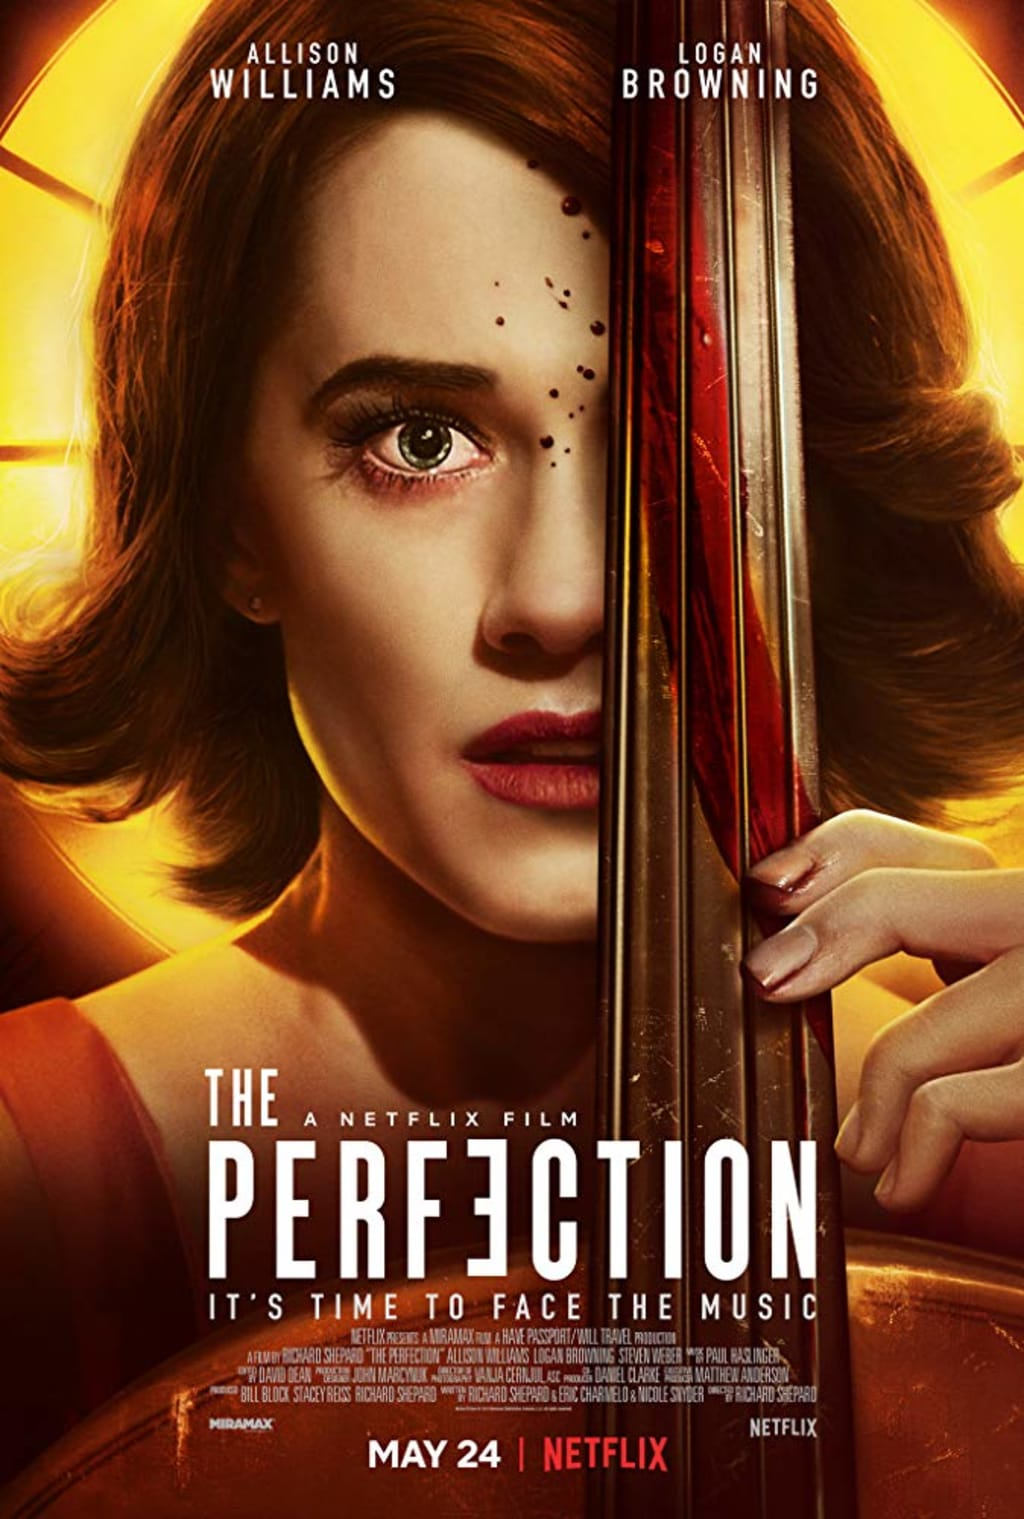 Reed Alexander's Horror Review of 'The Perfection' (2018)